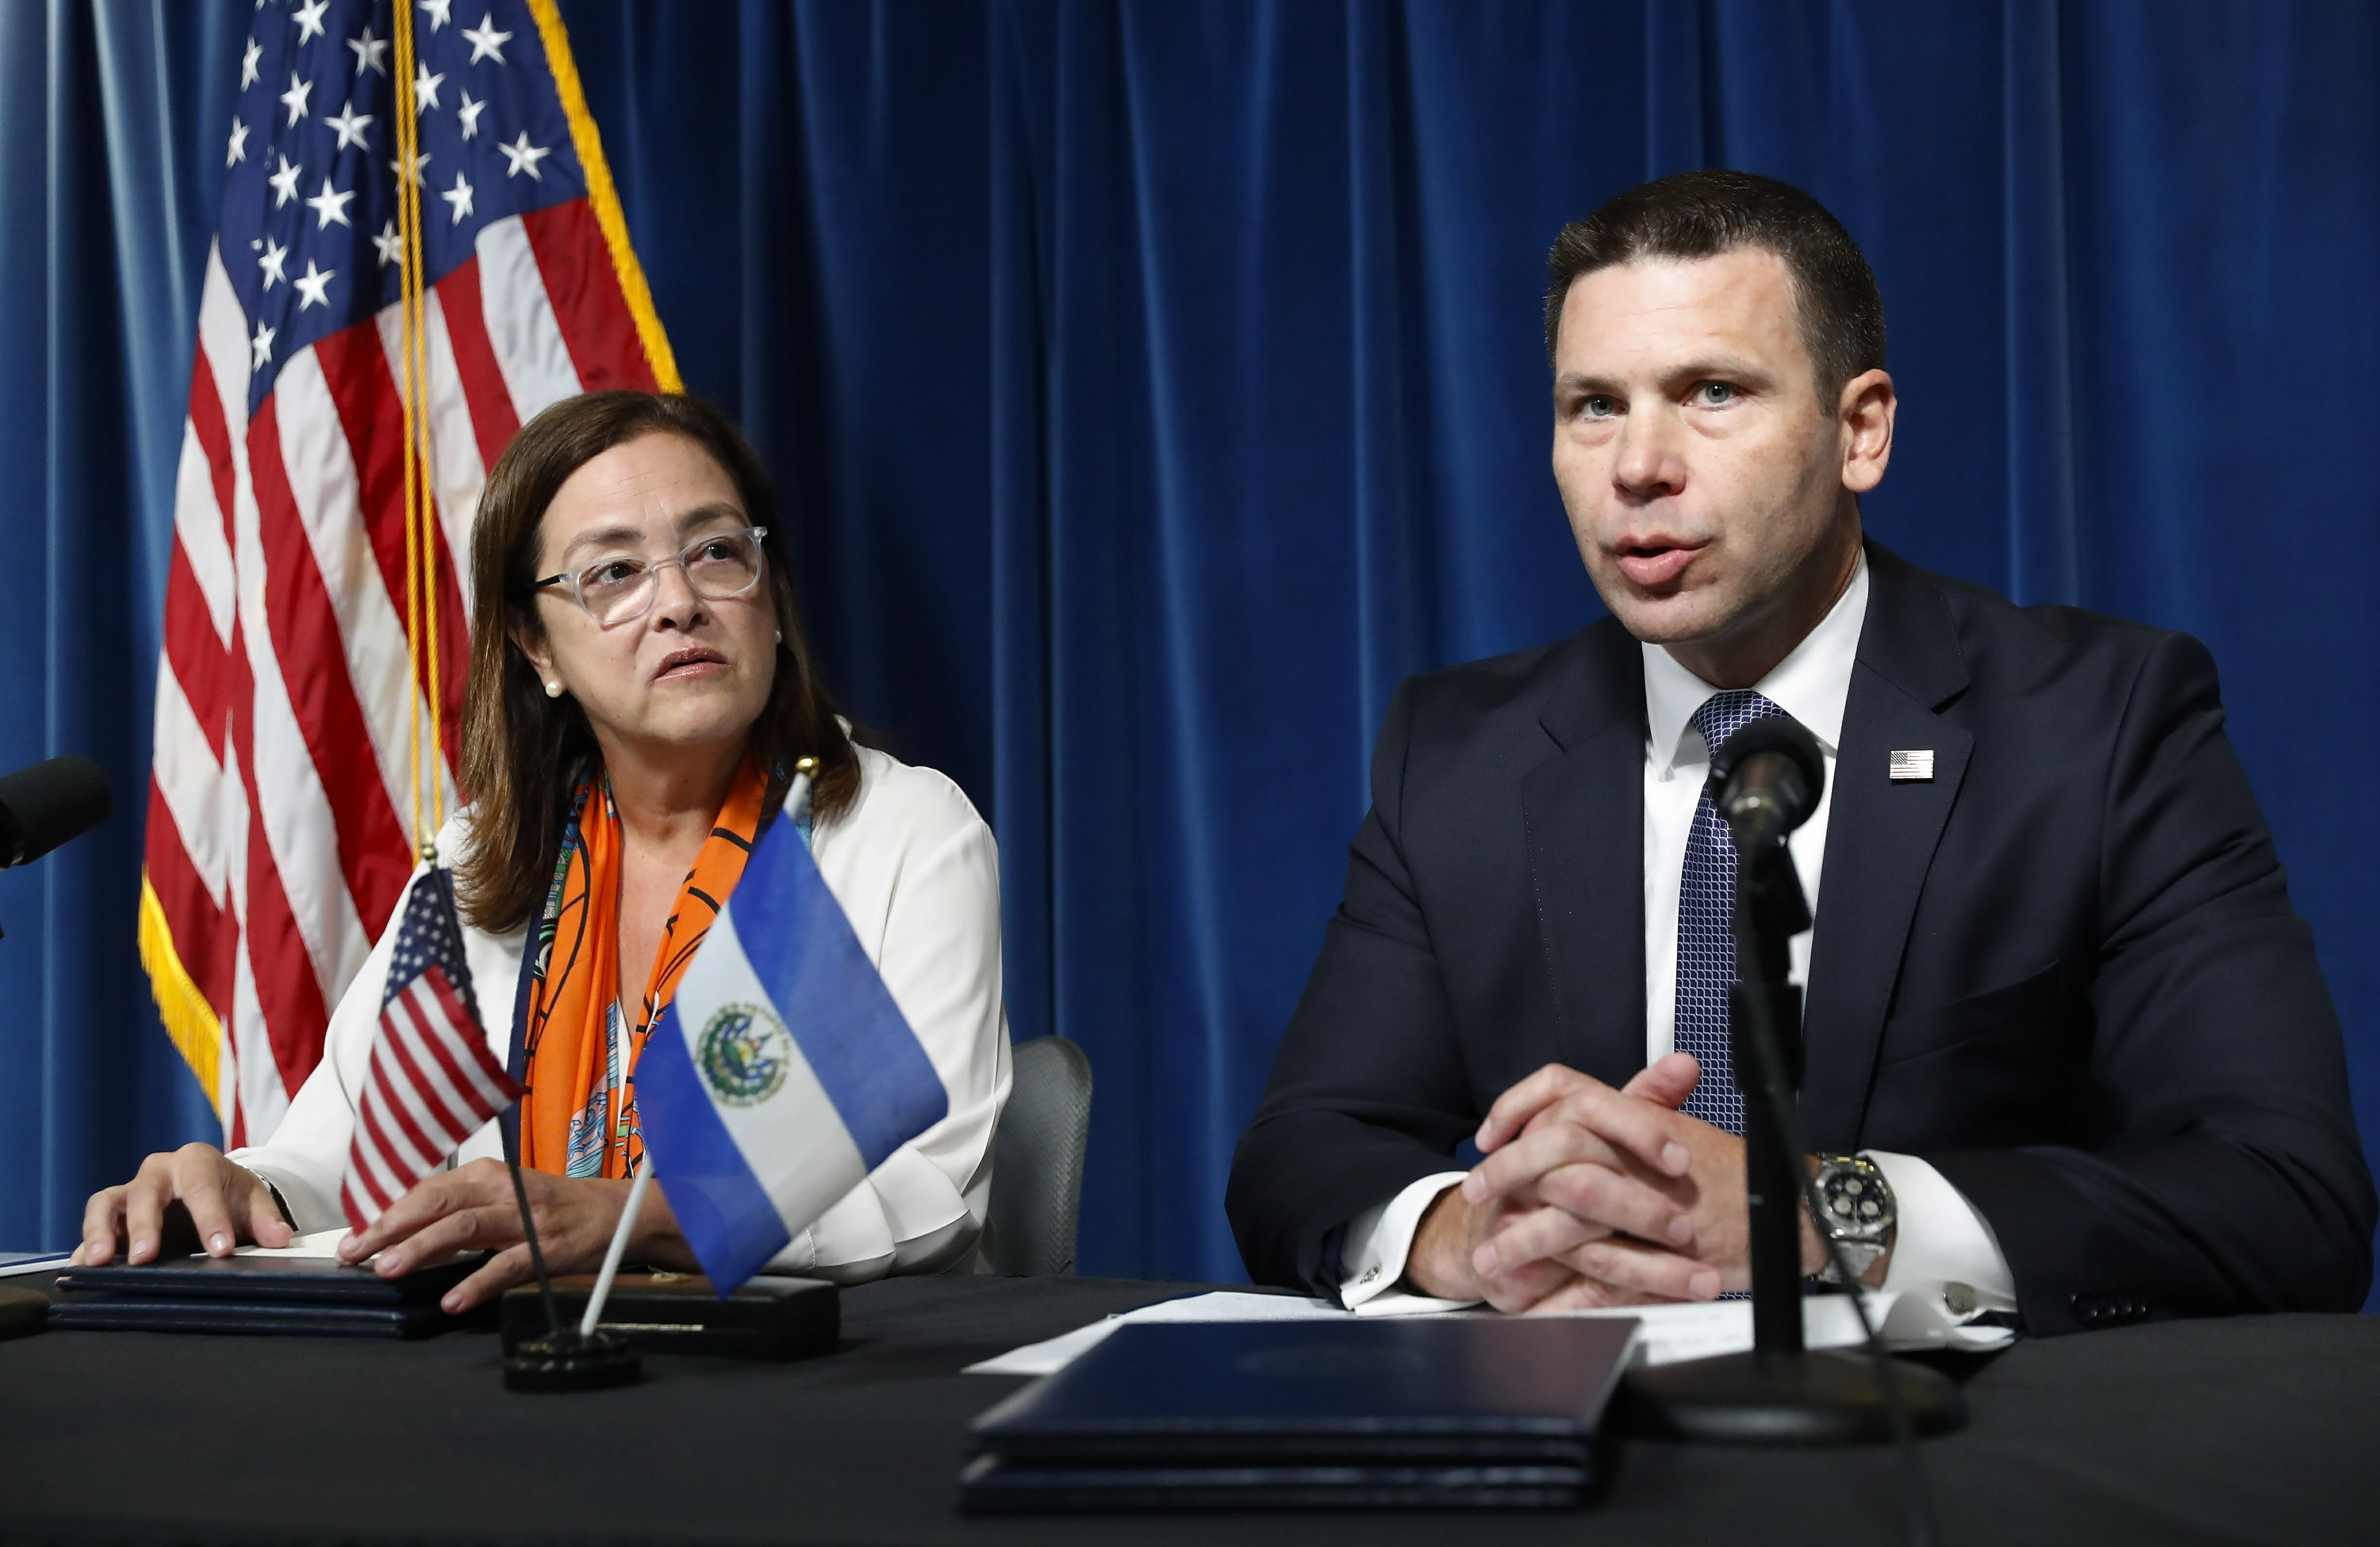 US, El Salvador sign asylum deal, but details vague